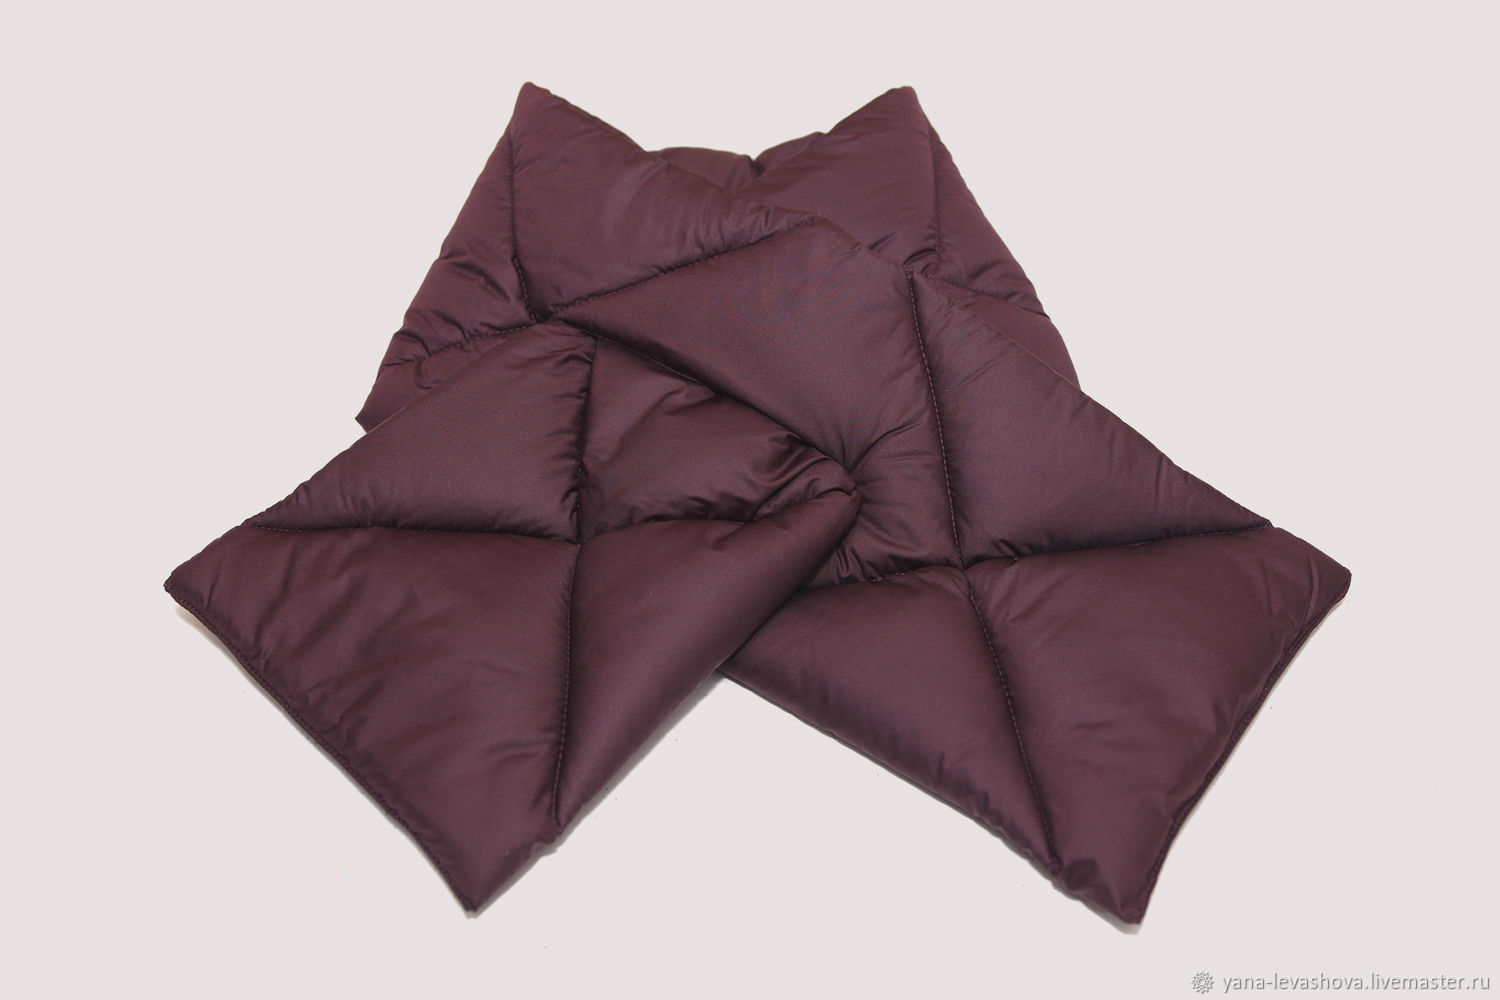 Quilted scarf for women or men made of raincoat, Scarves, Moscow,  Фото №1